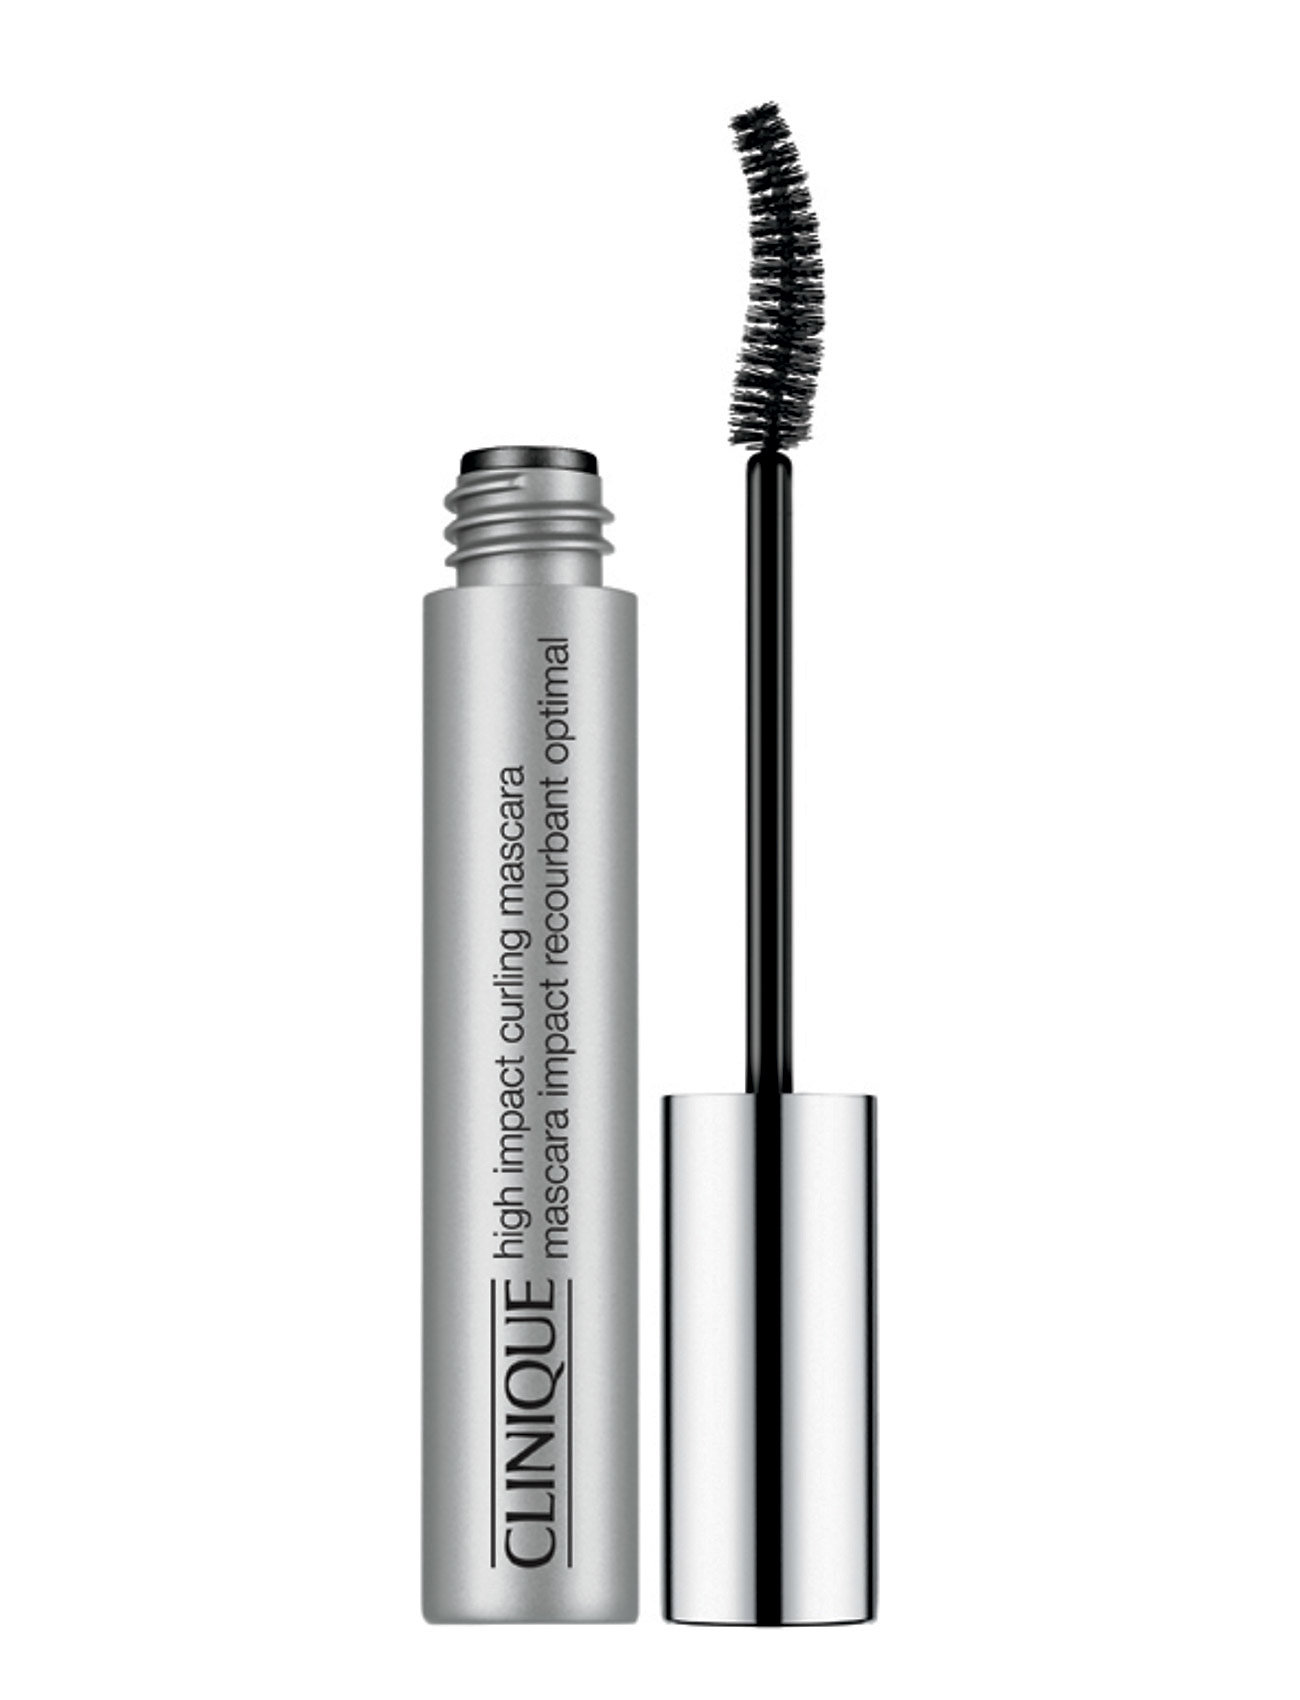 Clinique High Impact Curling Mascara, Black